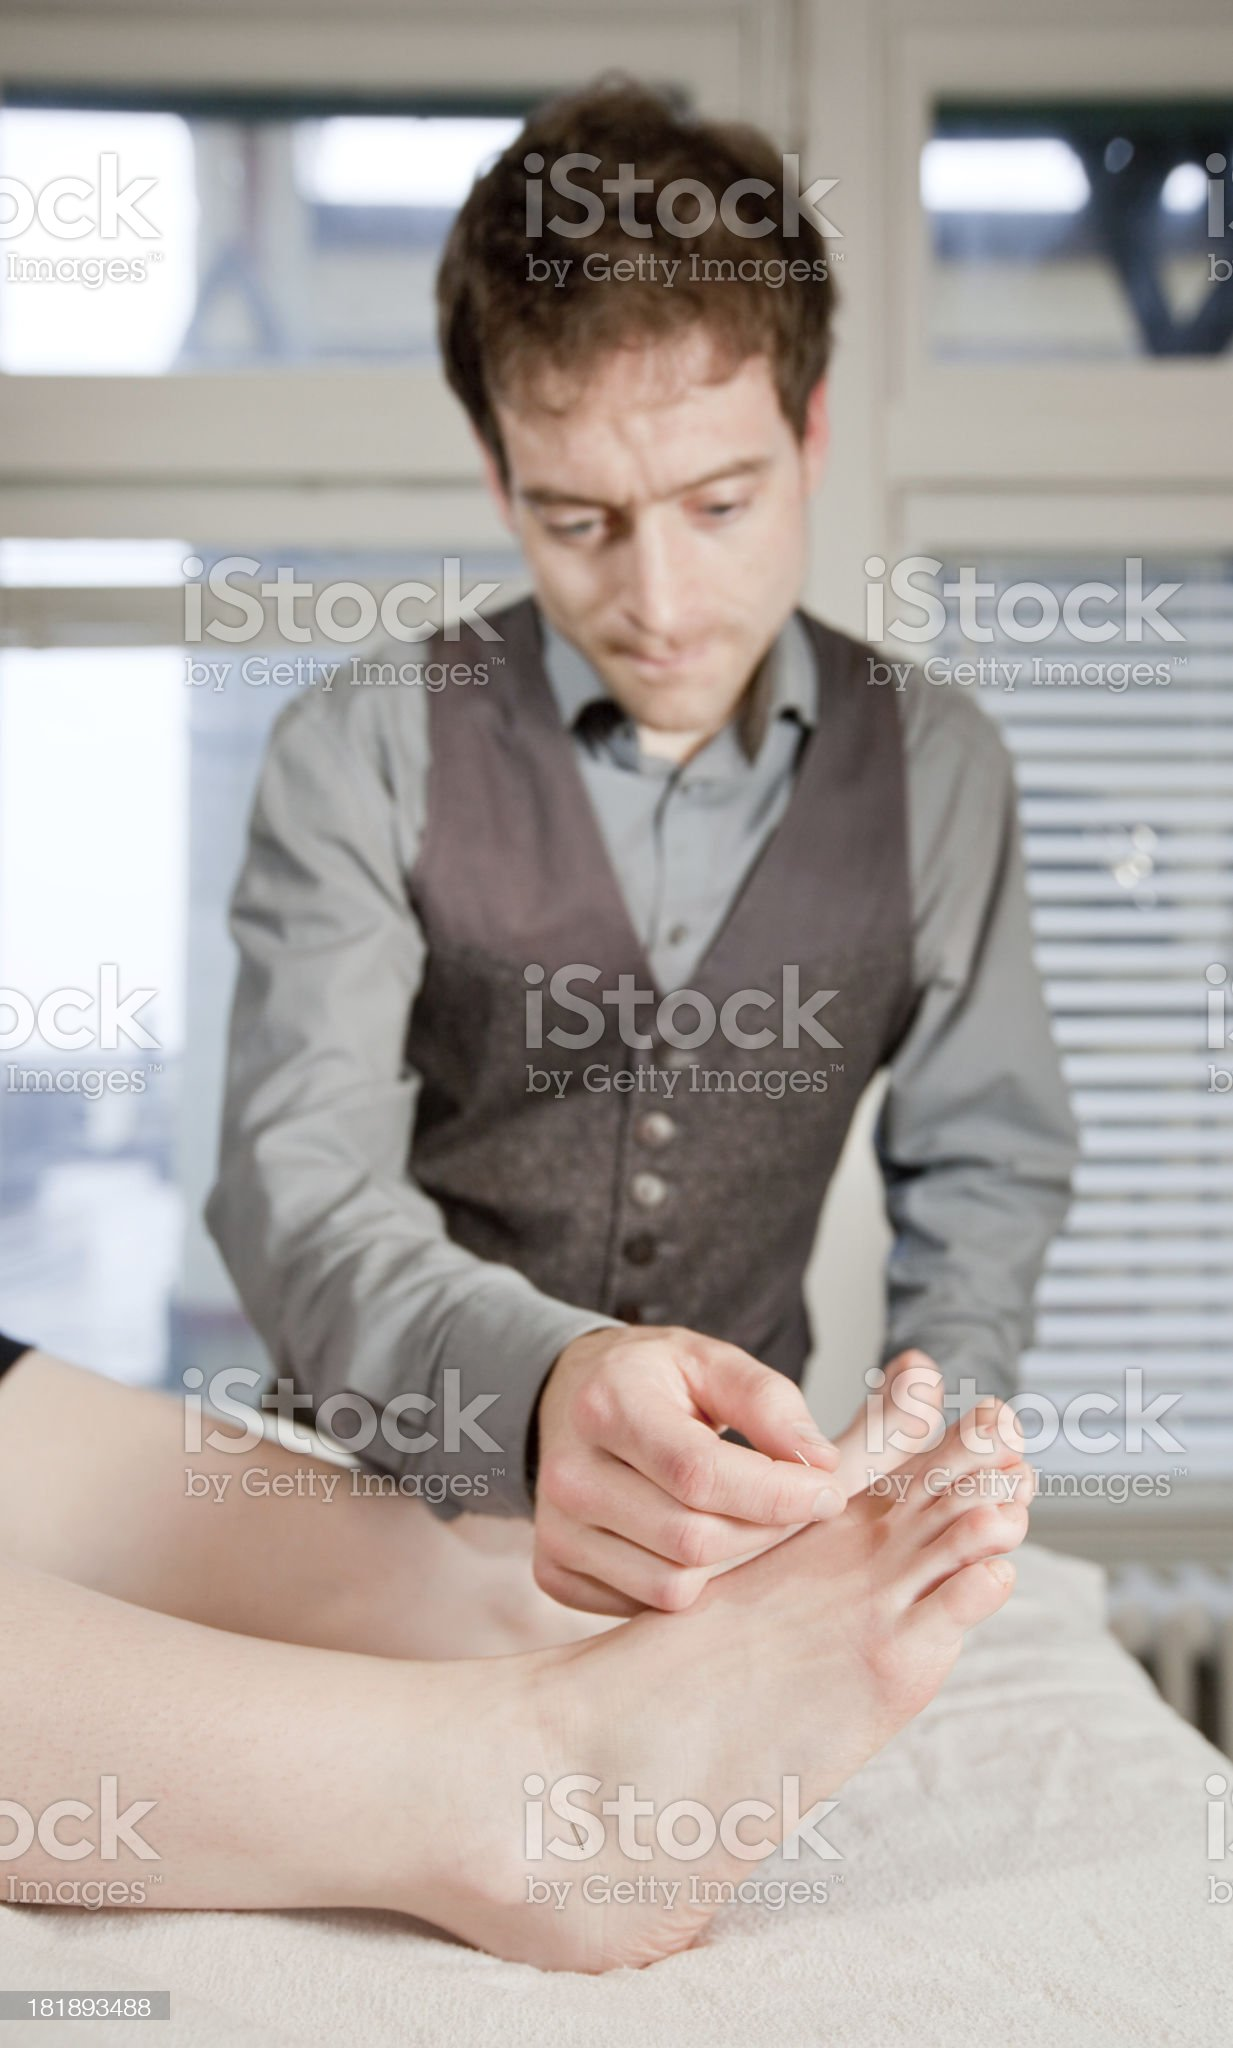 Foot Acupuncture royalty-free stock photo